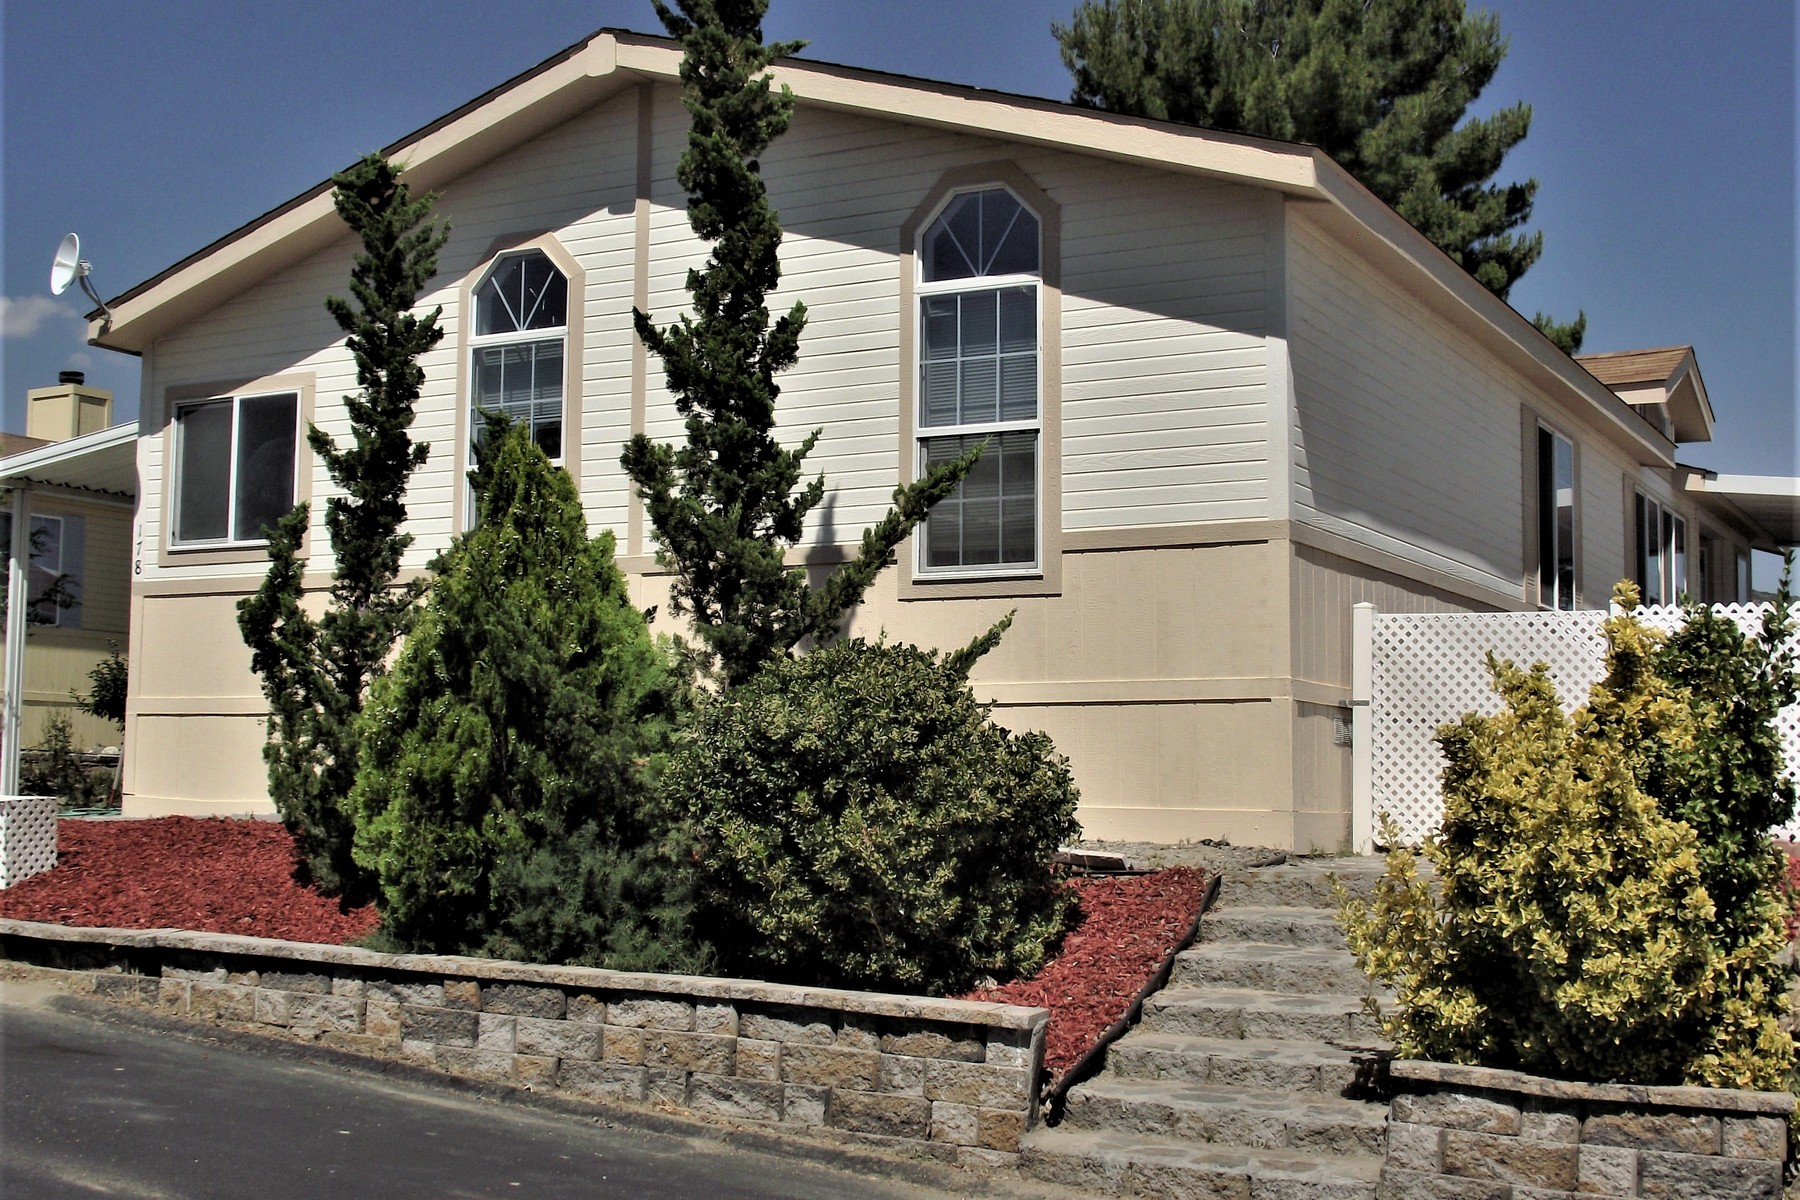 Single Family Homes for Sale at 35109 Highway 79 UNIT #177 / SPACE #178 Warner Springs, California 92086 United States